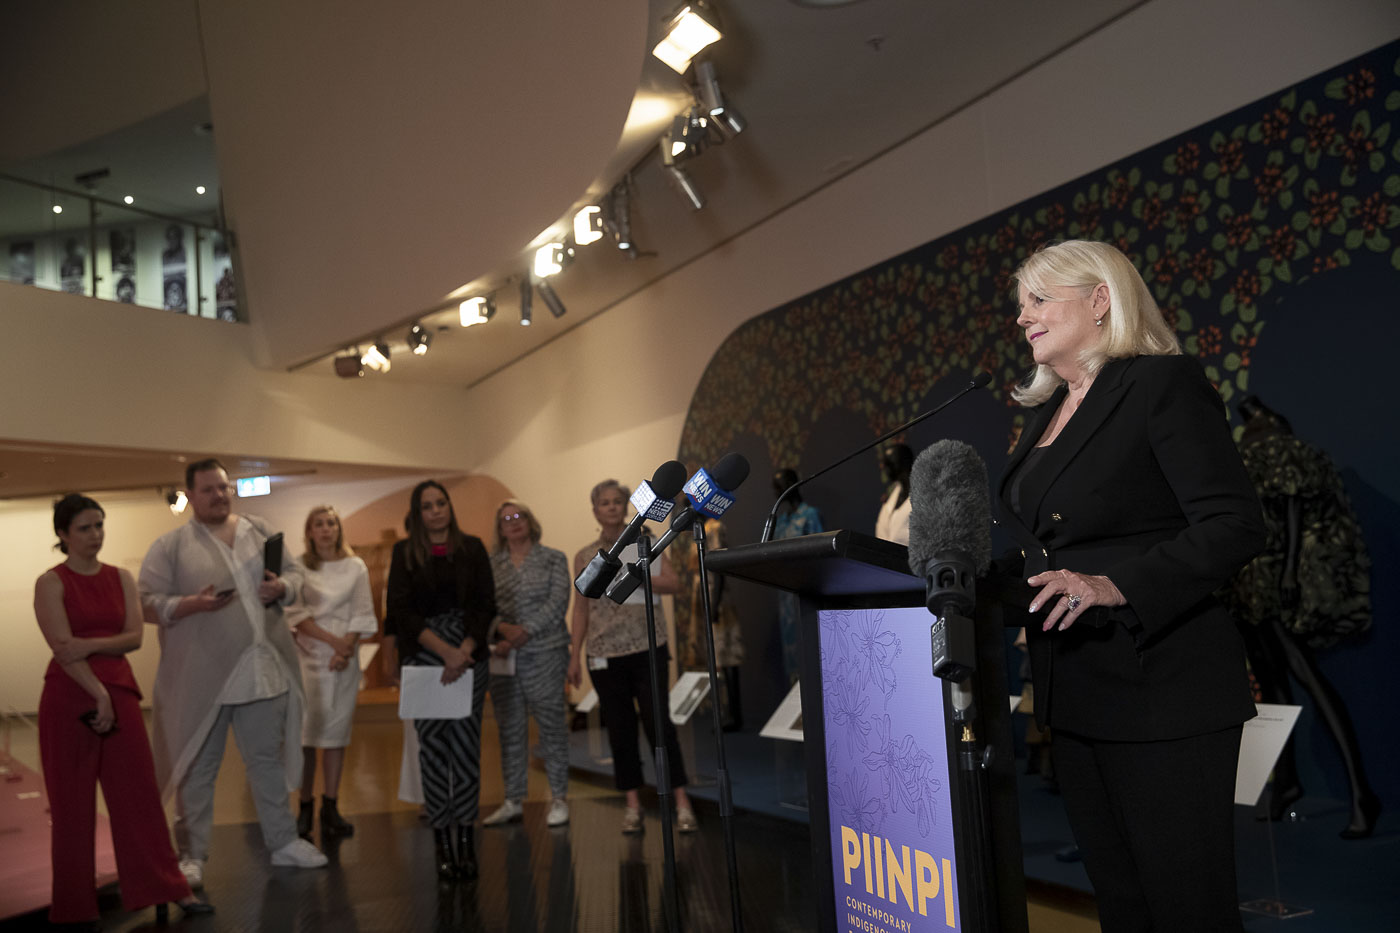 A woman in a formal black suit stands at a podium in front of a decorative exhibition wall. She is addressing an audience for the opening of a fashion exhibition. - click to view larger image